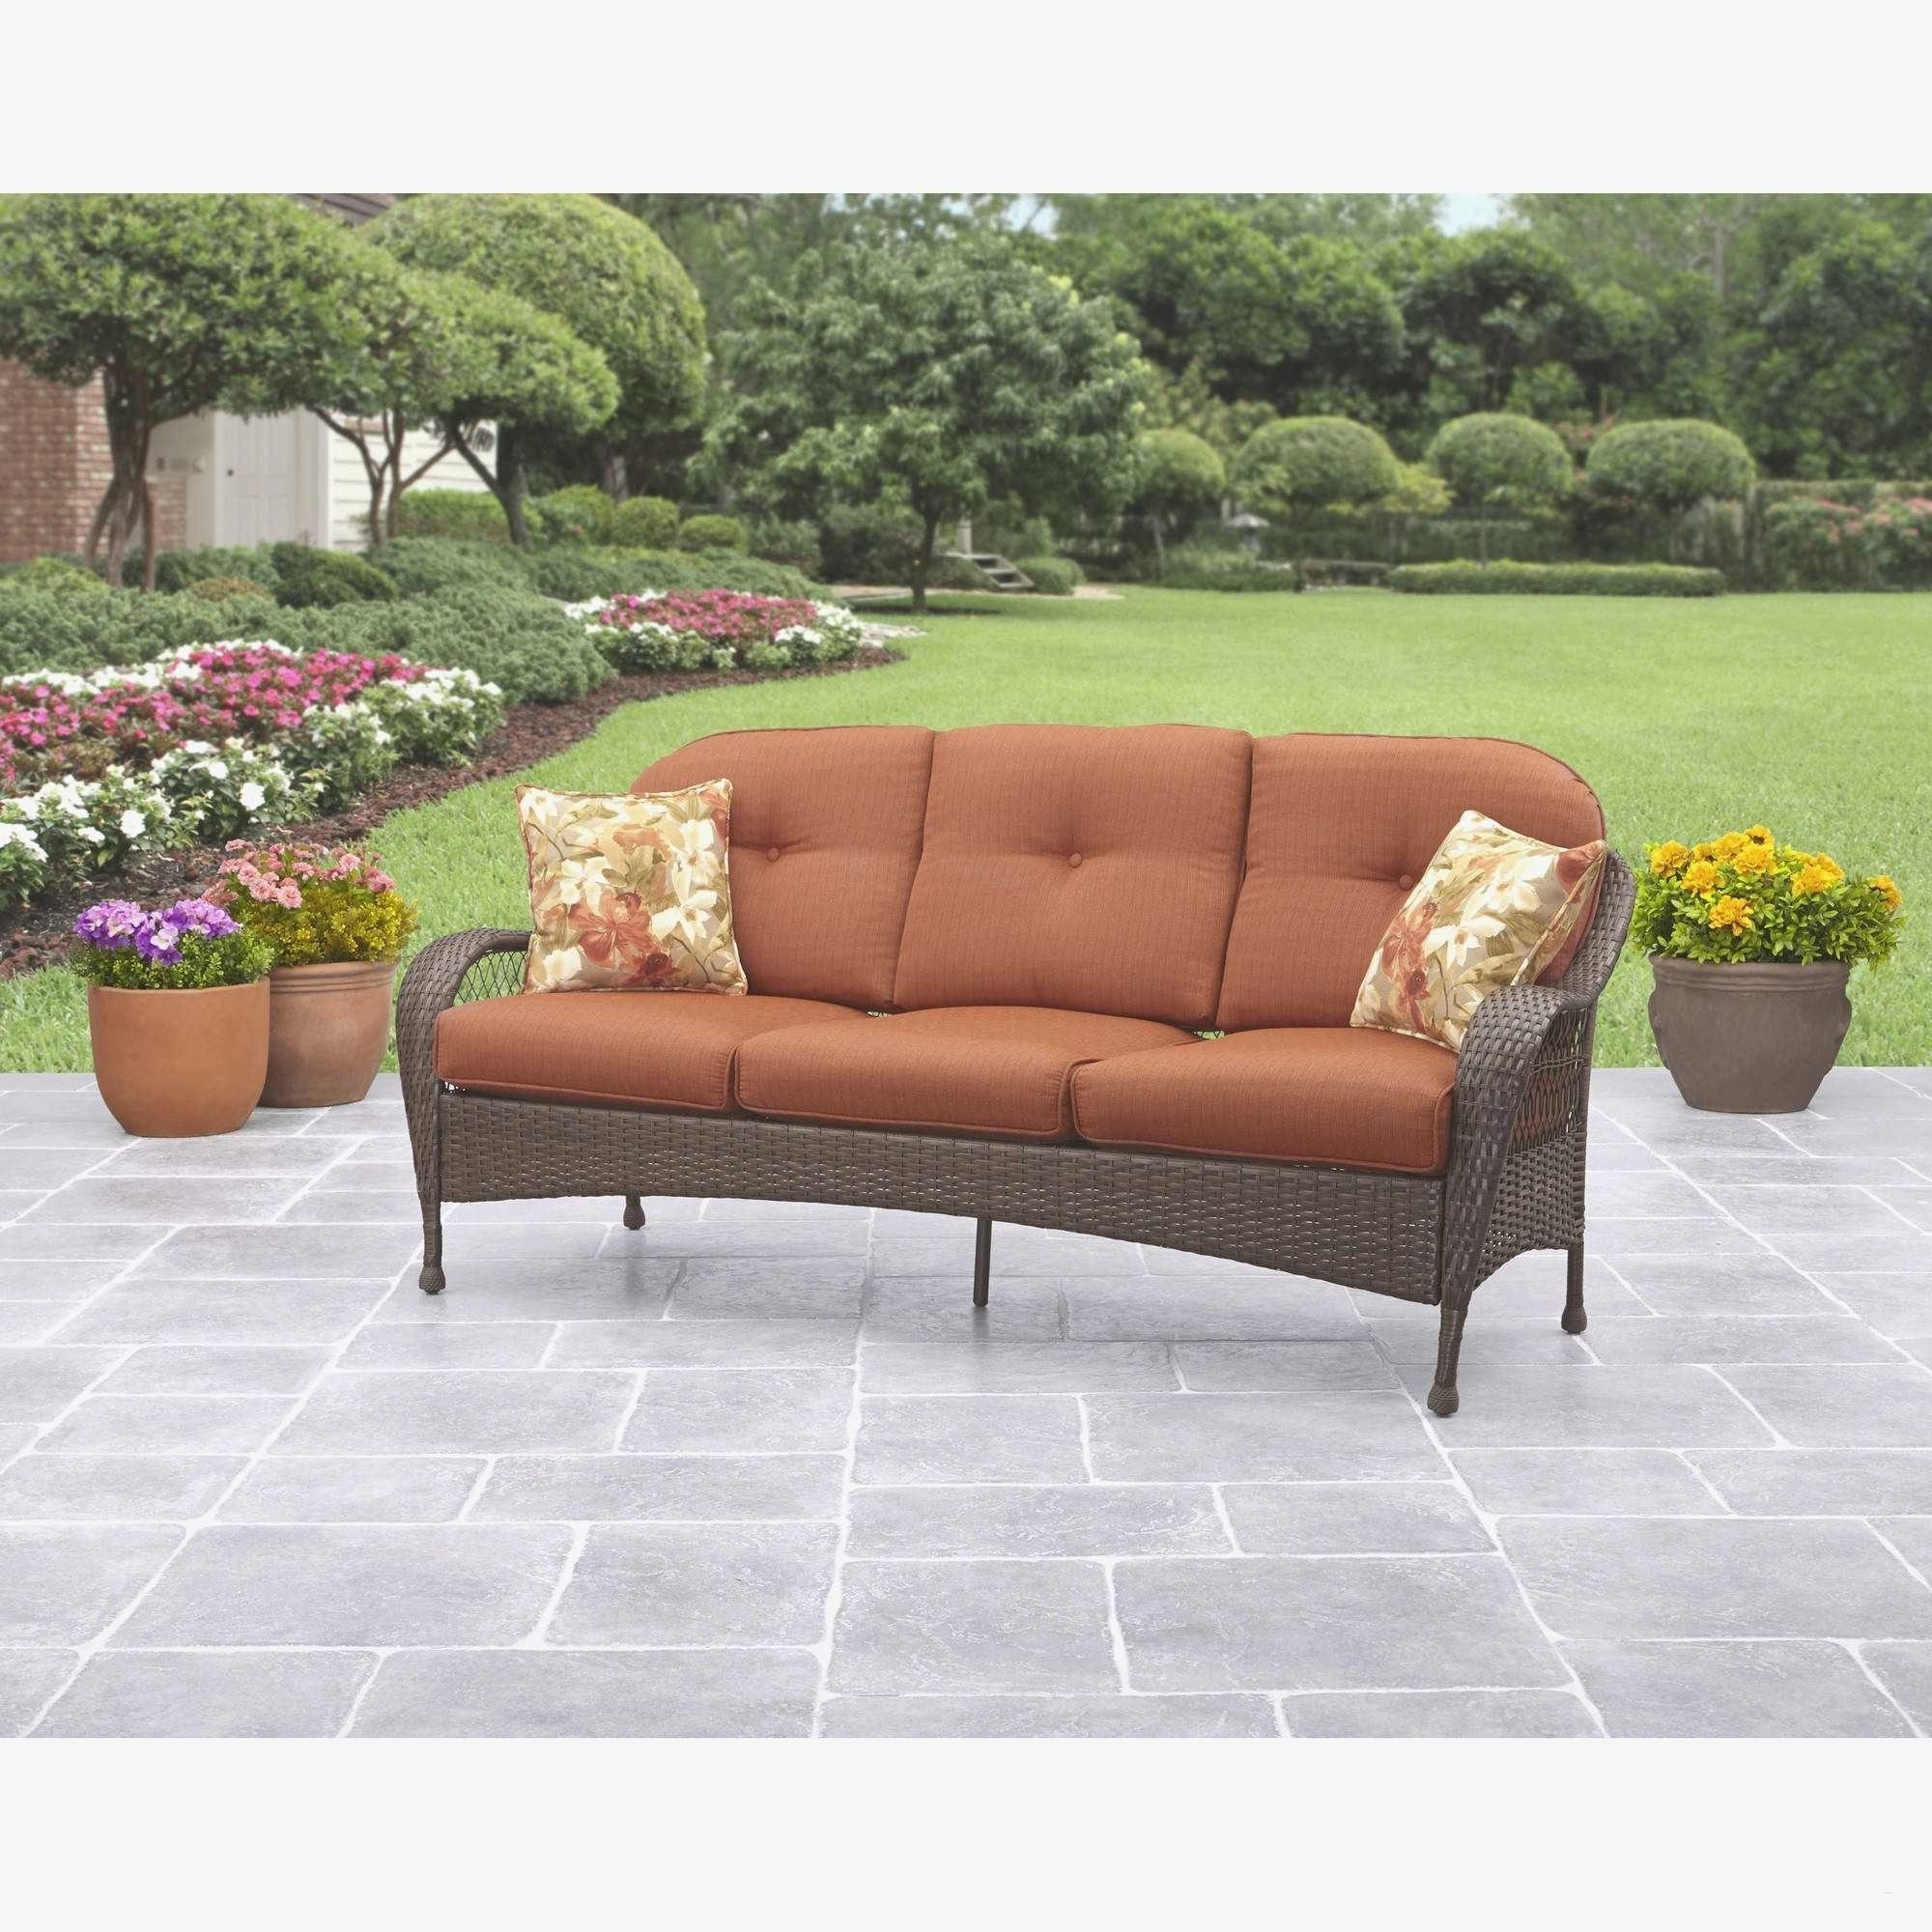 Walmart Patio Furniture Conversation Sets Intended For Well Known Patio Tables At Walmart Gorgeous Better Homes And Gardens Azalea (View 15 of 20)